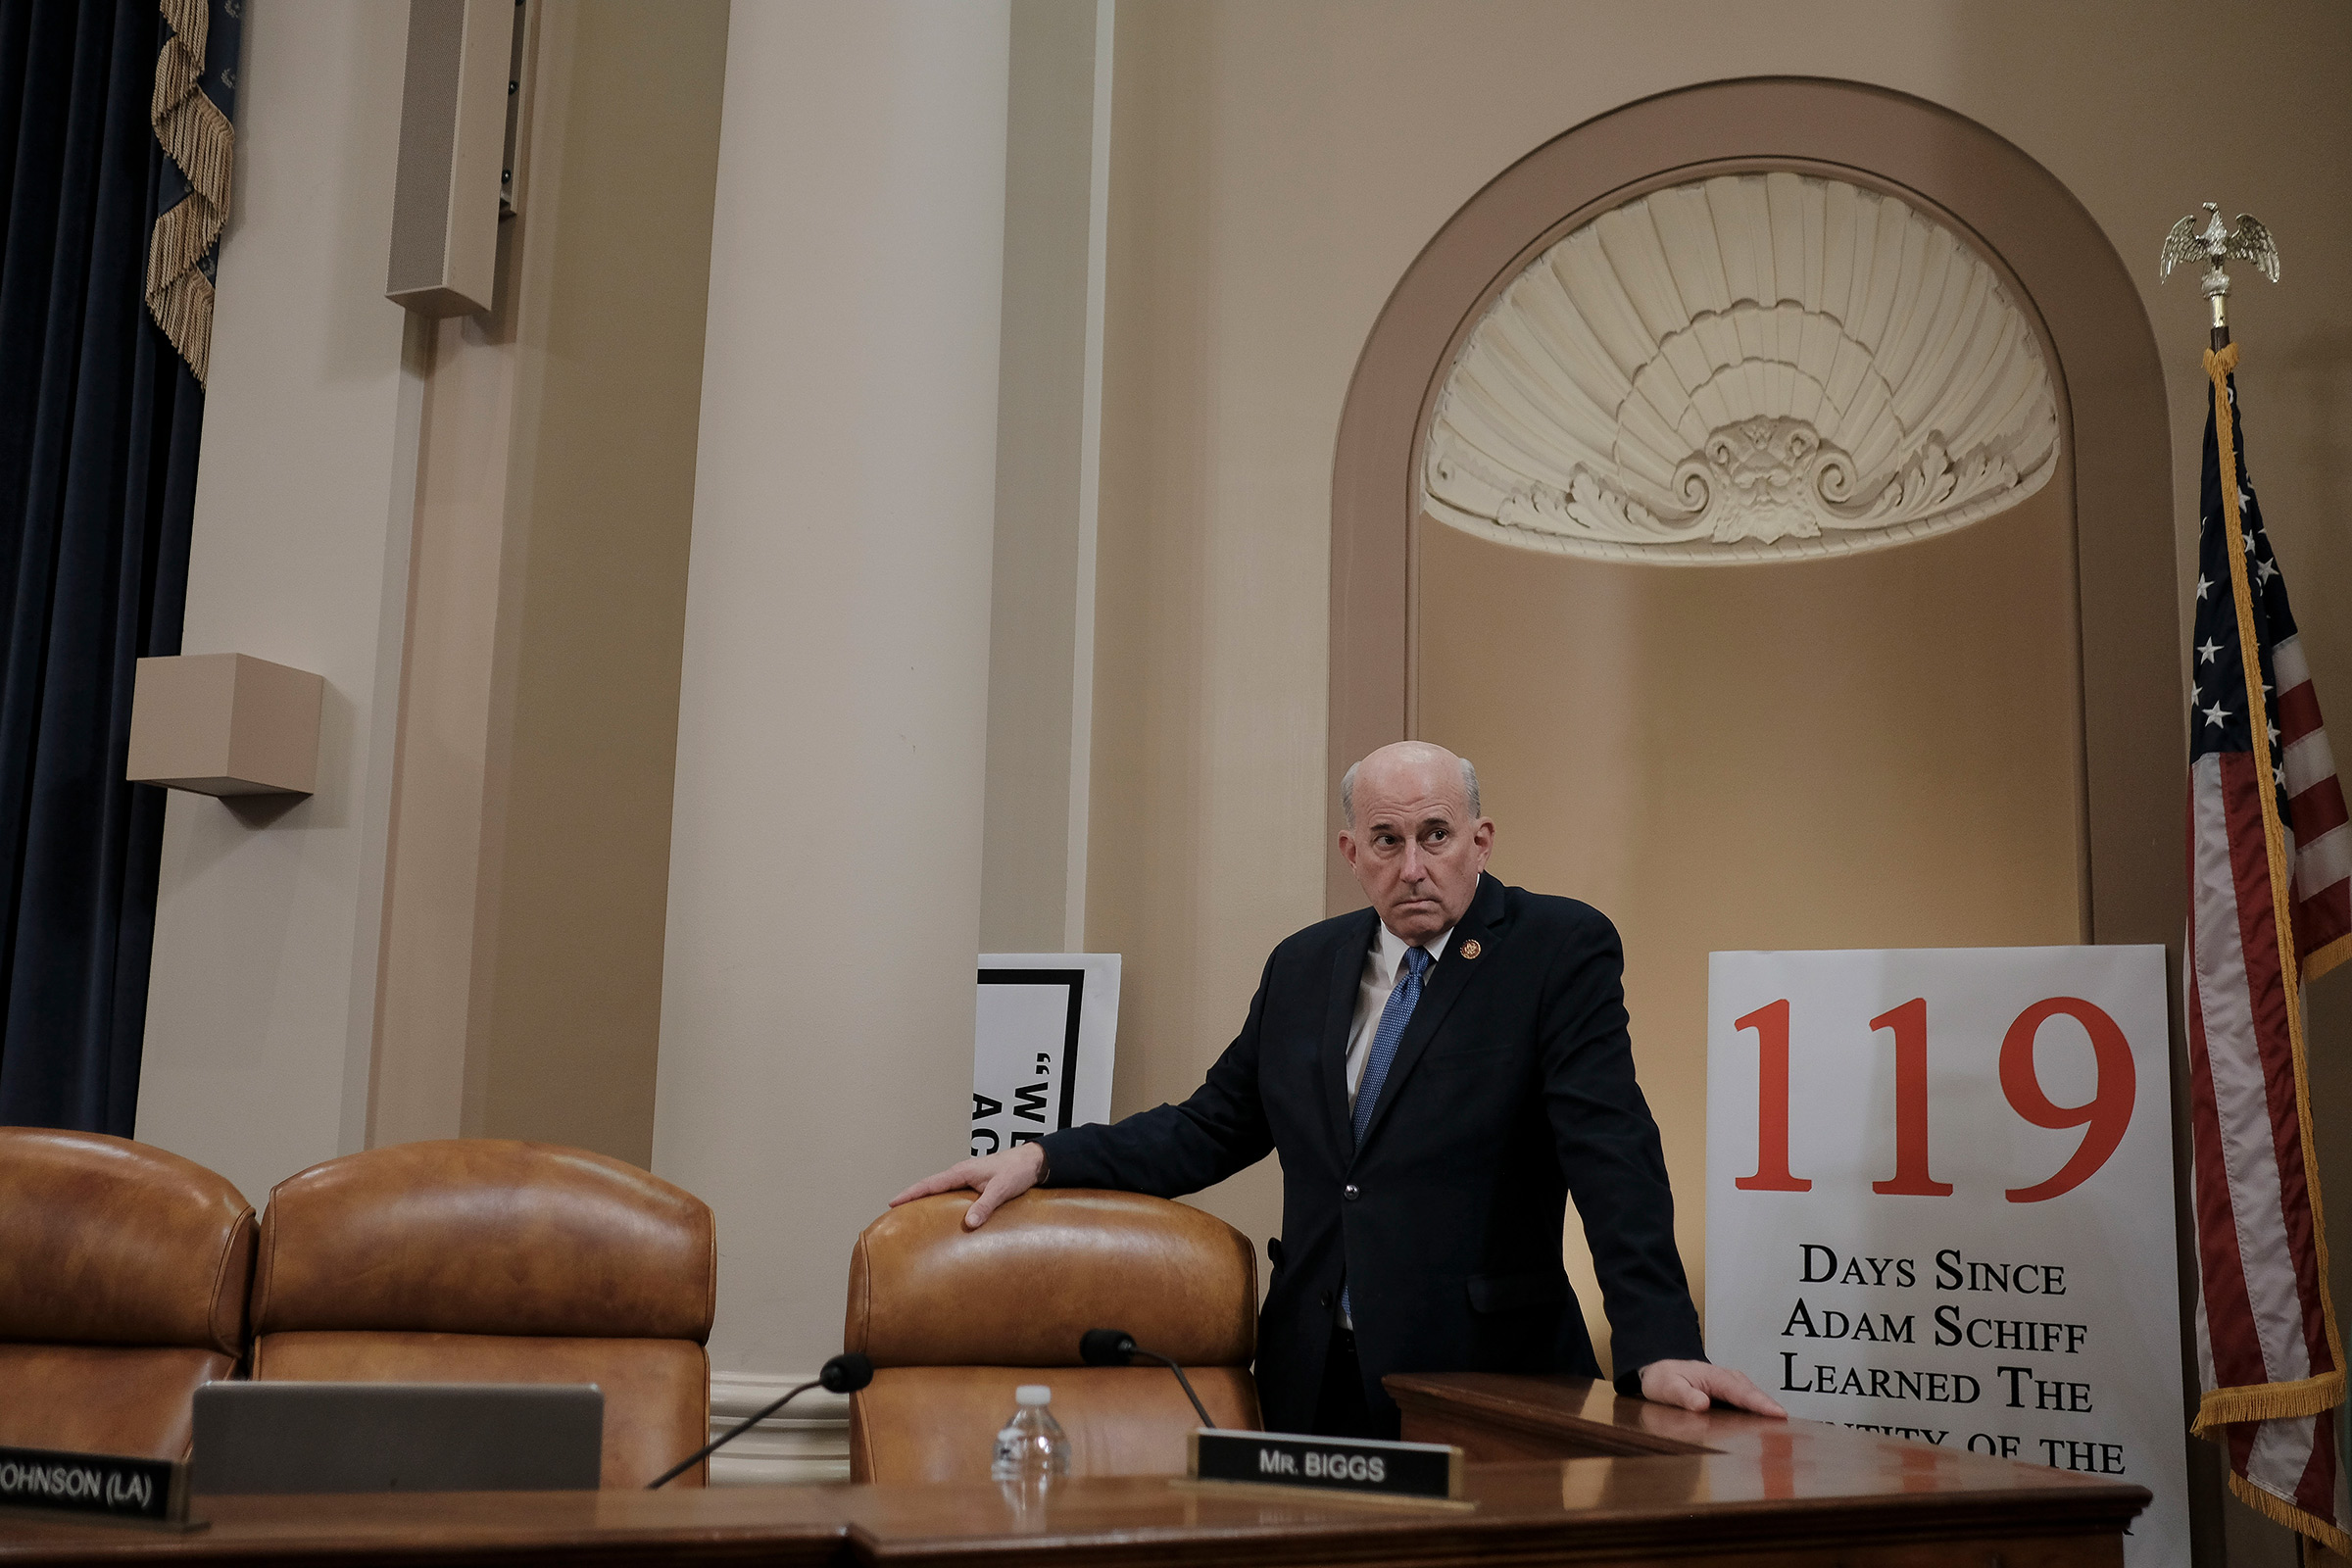 D.C. Rep. Louie Gohmert (R-Texas) settles in before the House Judiciary Committee hearing on the impeachment inquiry at the Longworth House Office building on Capitol Hill in Washington, D.C., on Dec. 9, 2019.